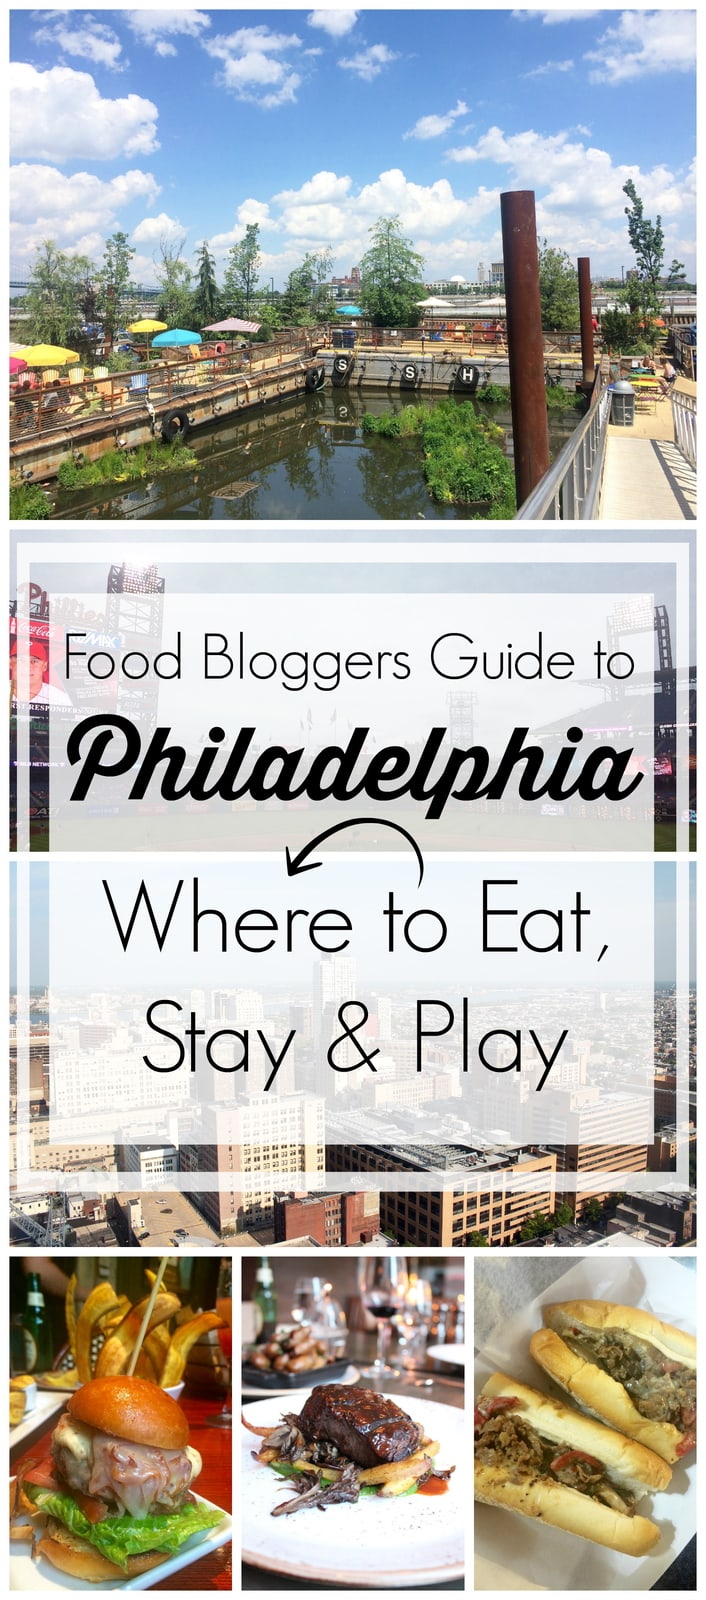 Food Bloggers Guide to Philadelphia